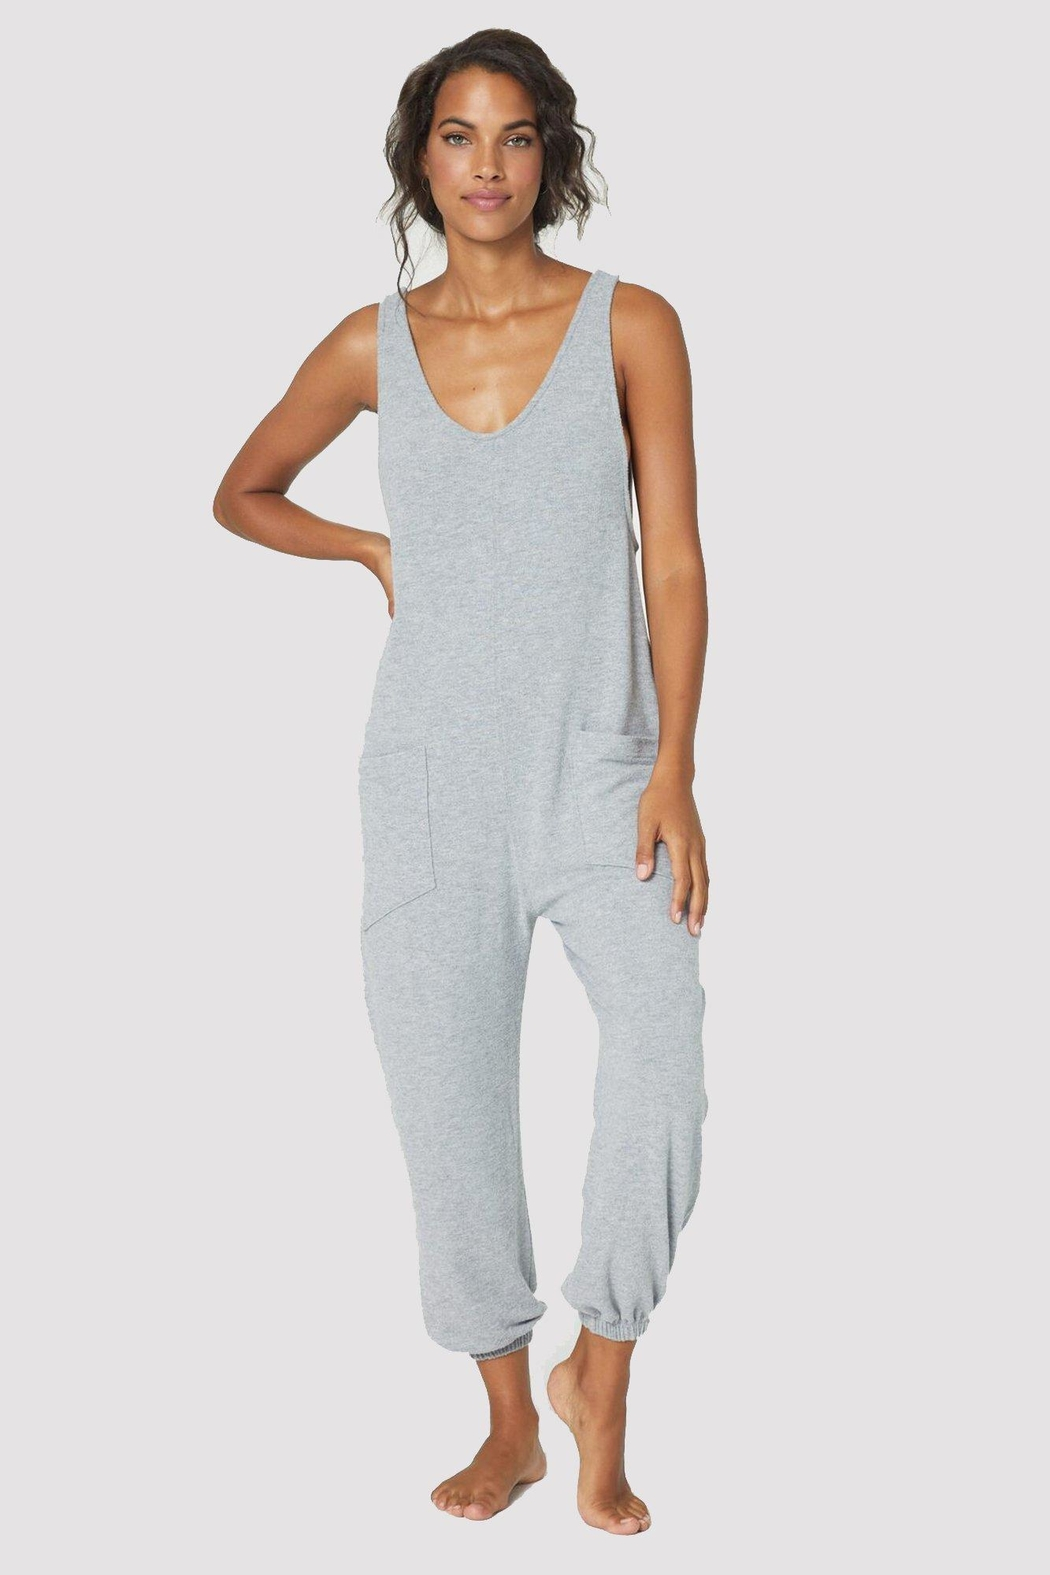 b8ce811eea65 SPIRITUAL GANGSTER Hacci Jumpsuit from Hudson Valley by Bfree ...